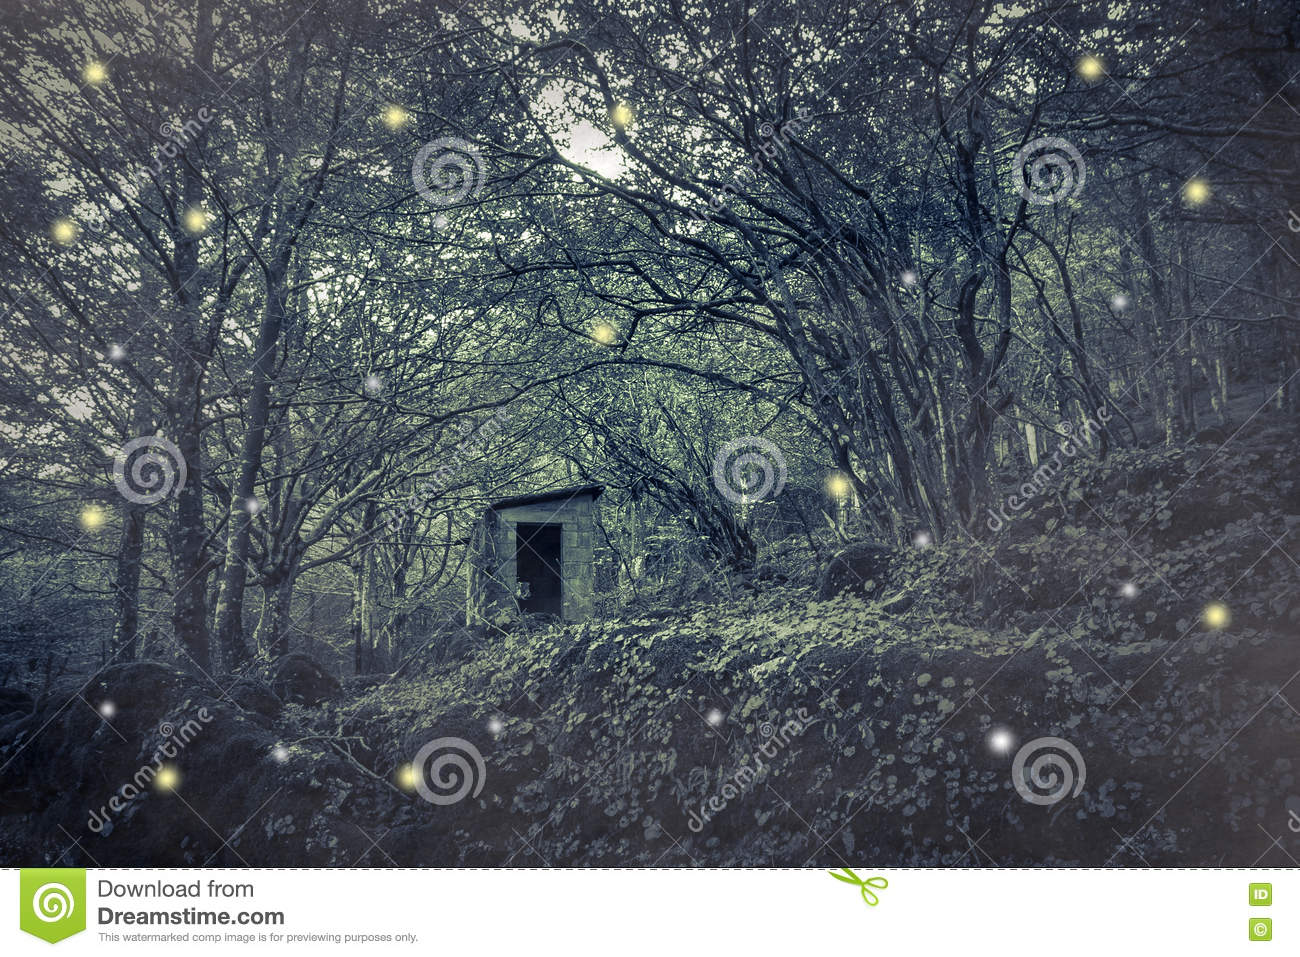 Fairies house in the wood